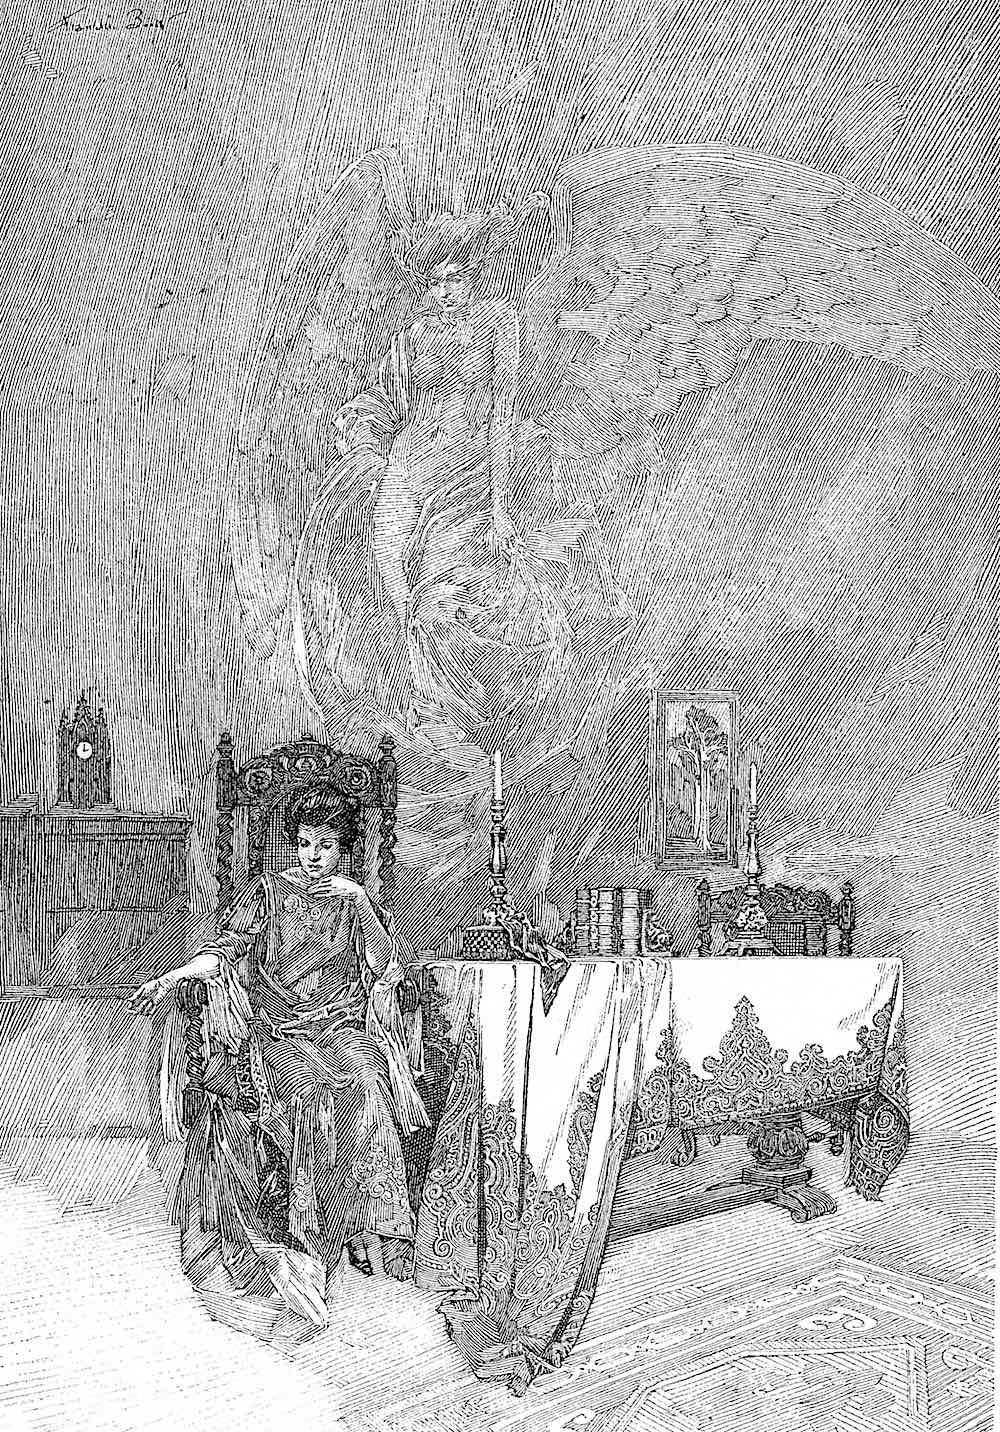 a Franklin Booth illustration of a woman thinking